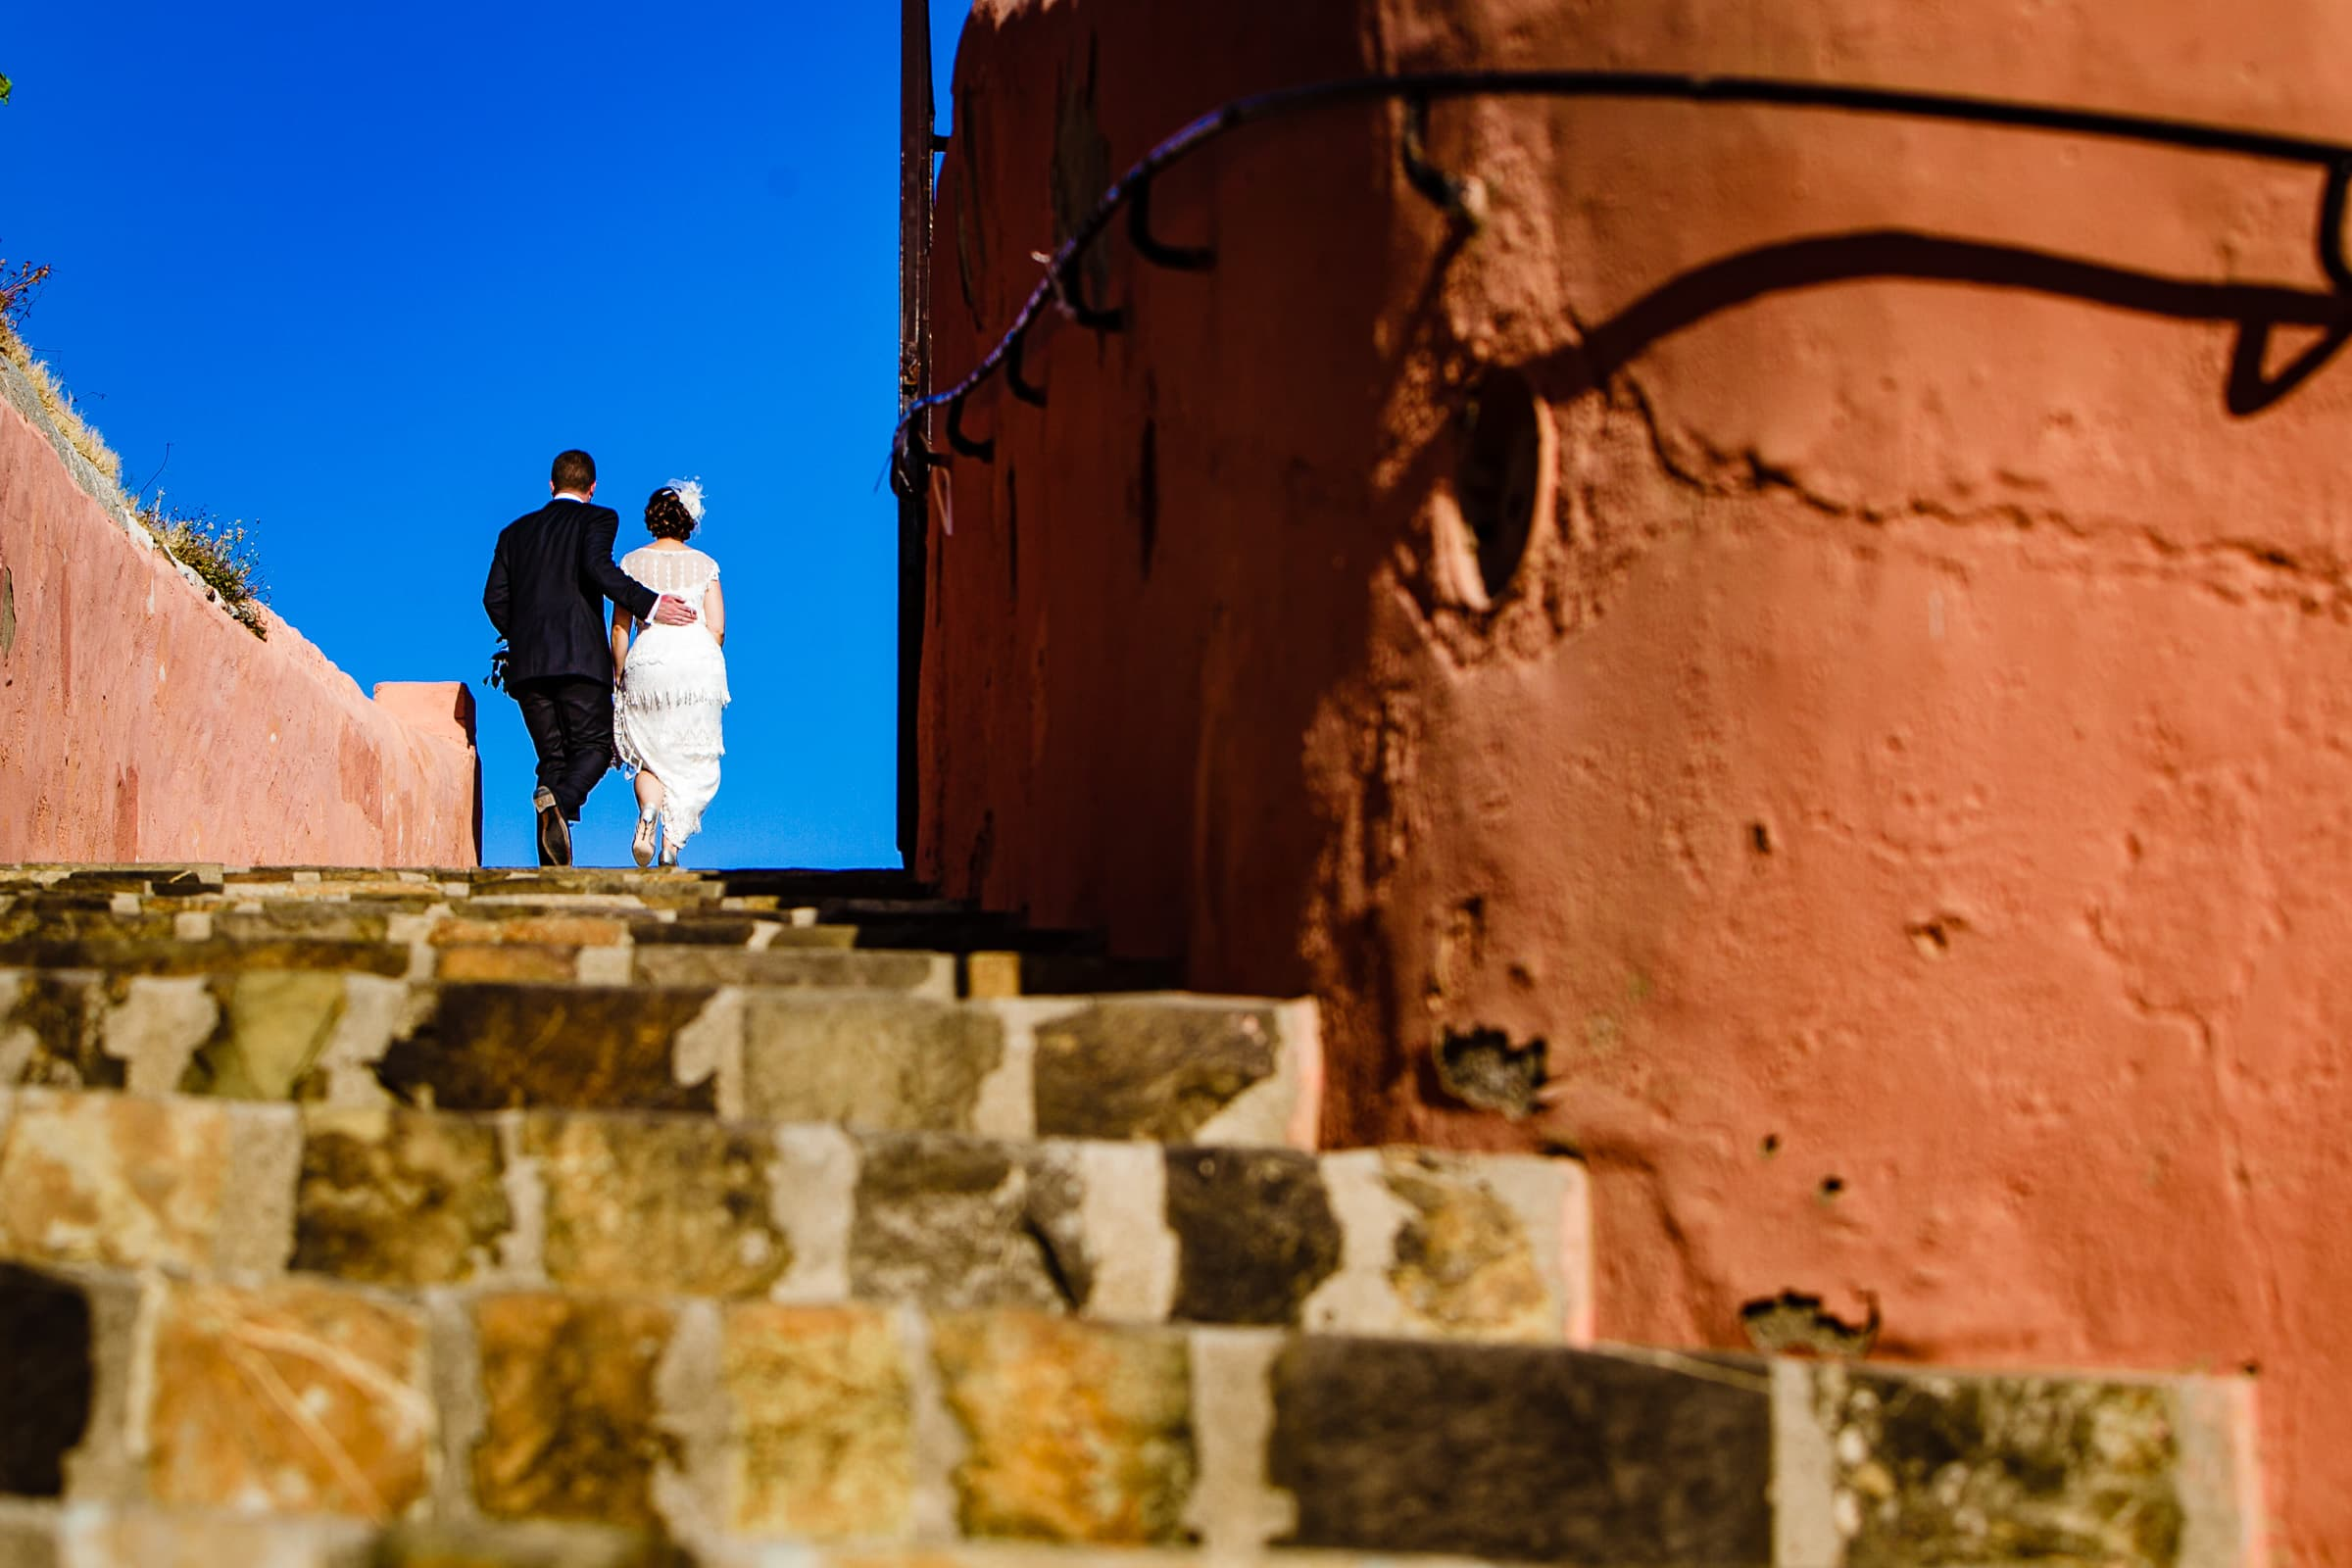 Bride and groom walking up stairs shortly after their Sicily Wedding ceremony in Milazzo, Italy